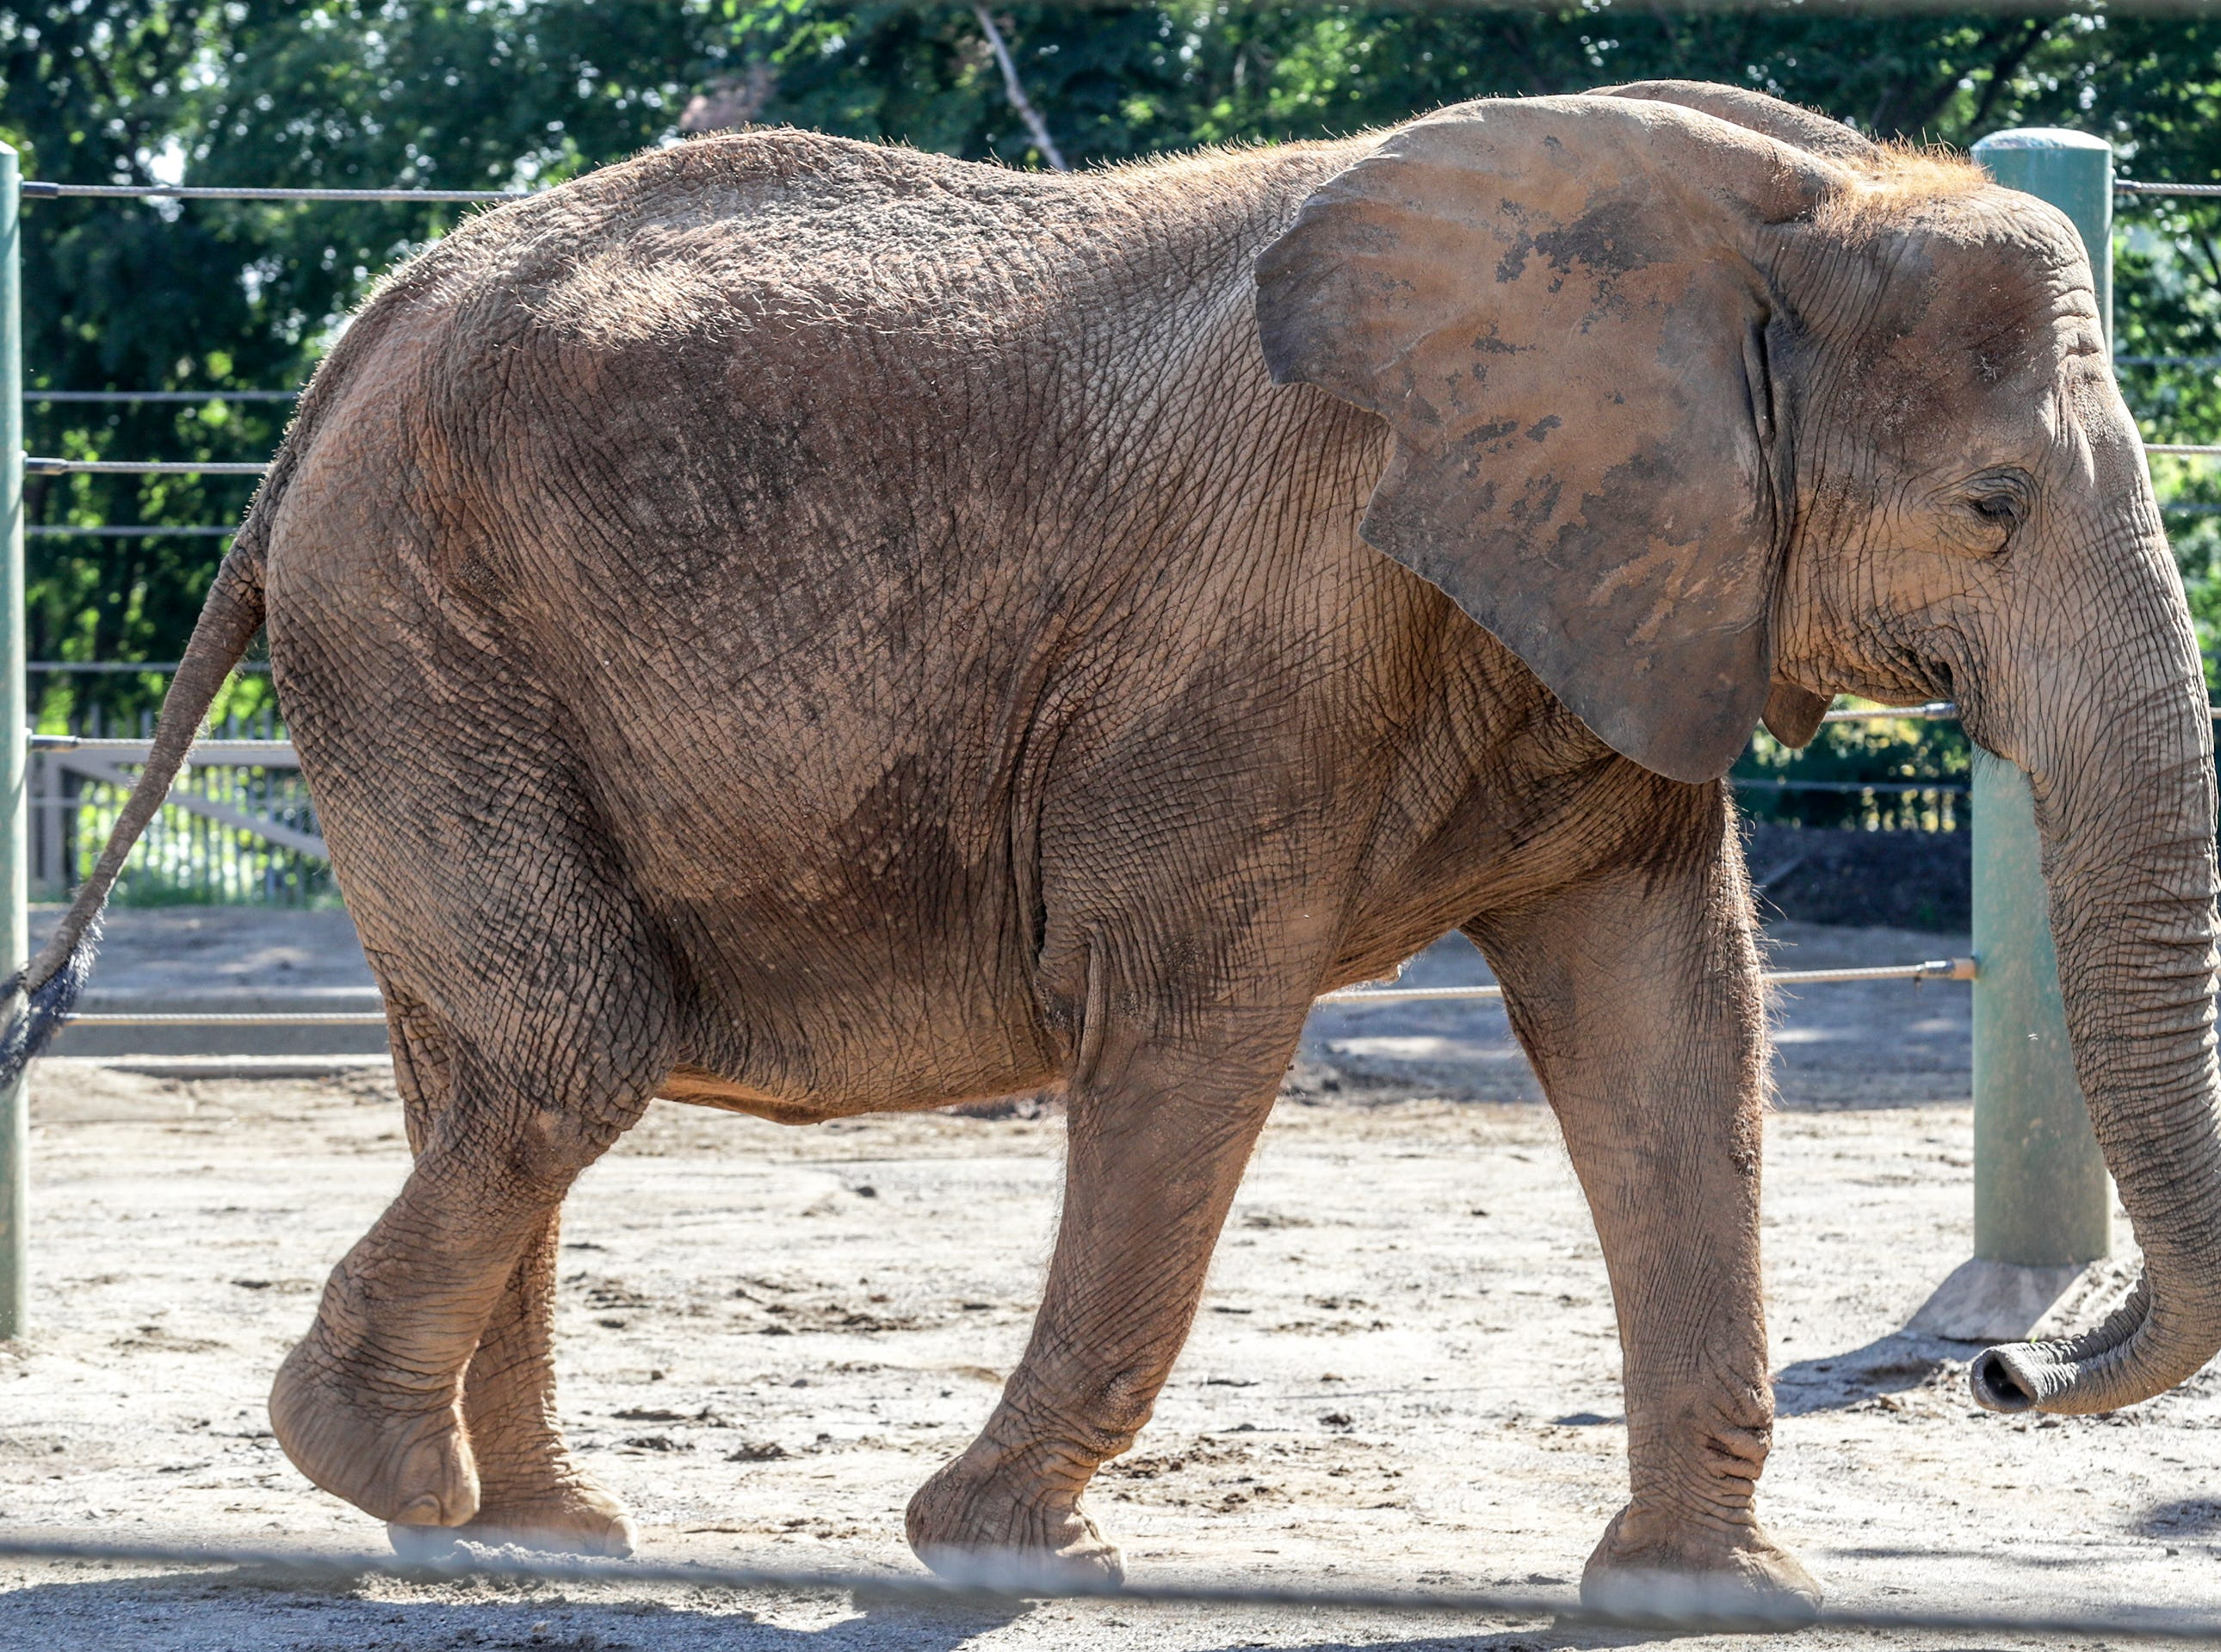 Mikki, an African elephant at the Louisville Zoo, walks around her enclosure before getting an ultrasound.  She is pregnant and is 11 months into a pregnancy that will last between 20 and 22 months.